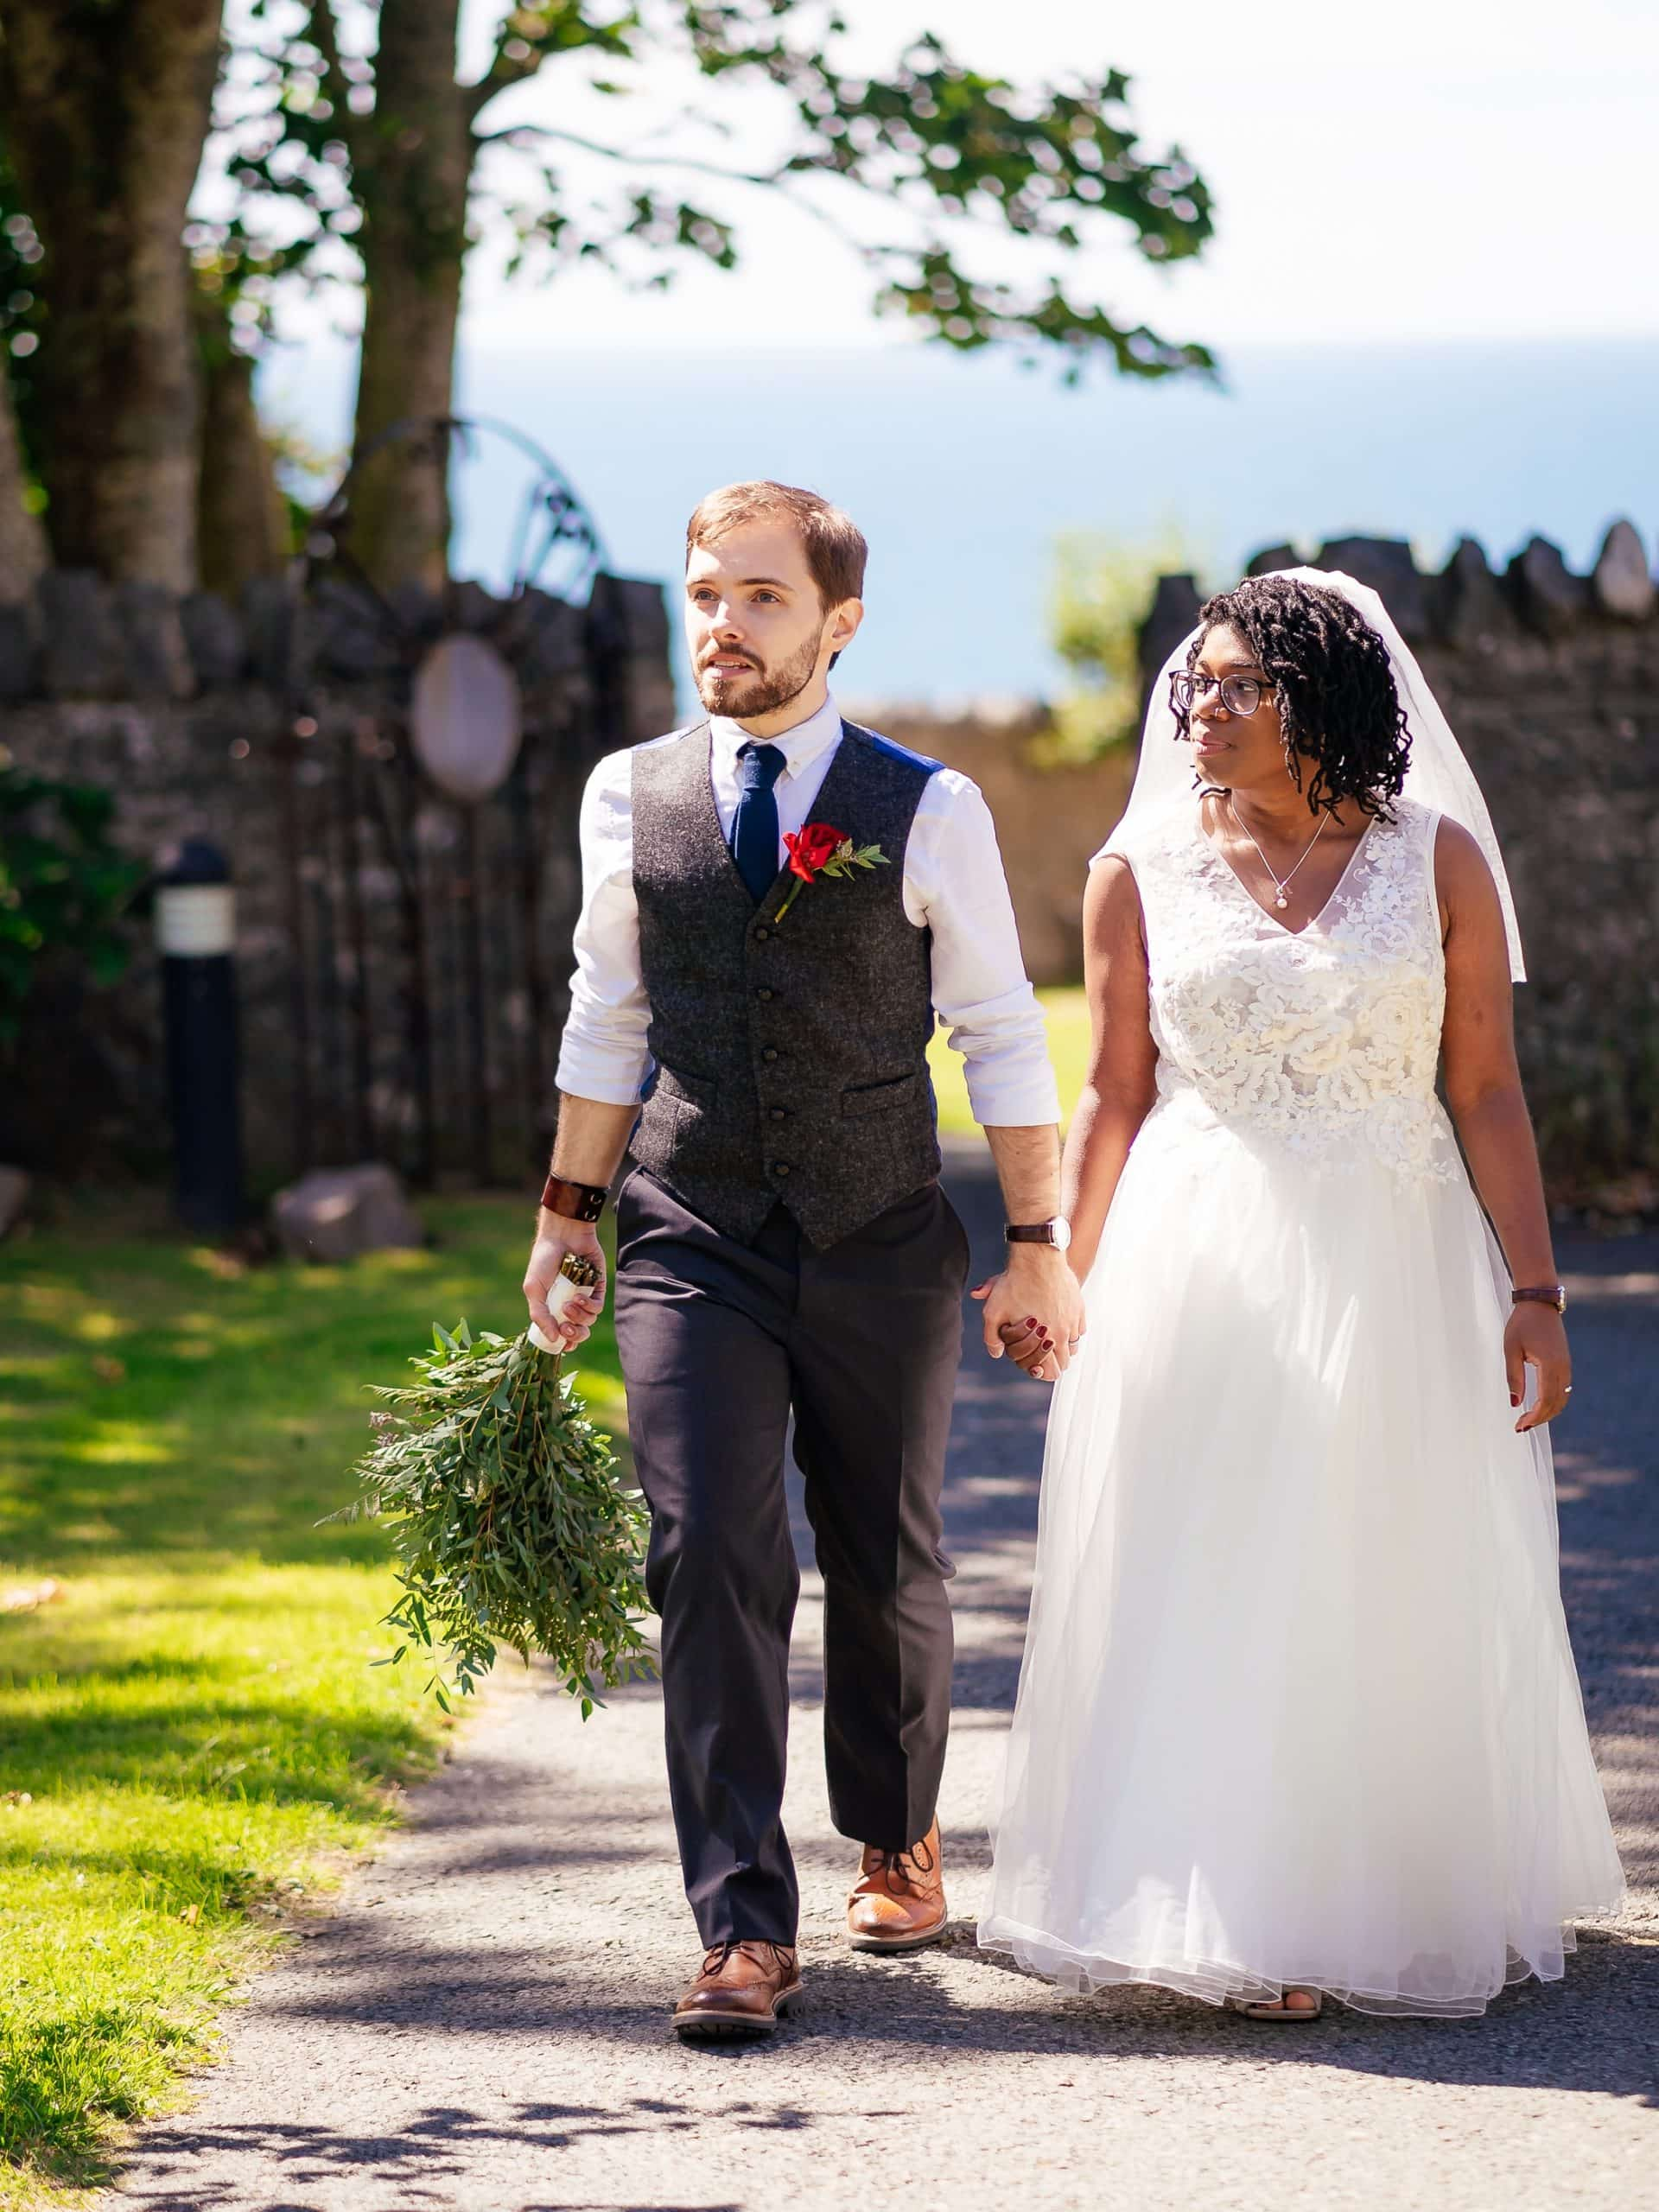 Couple walking through the grounds at Nant Gwrtheyrn